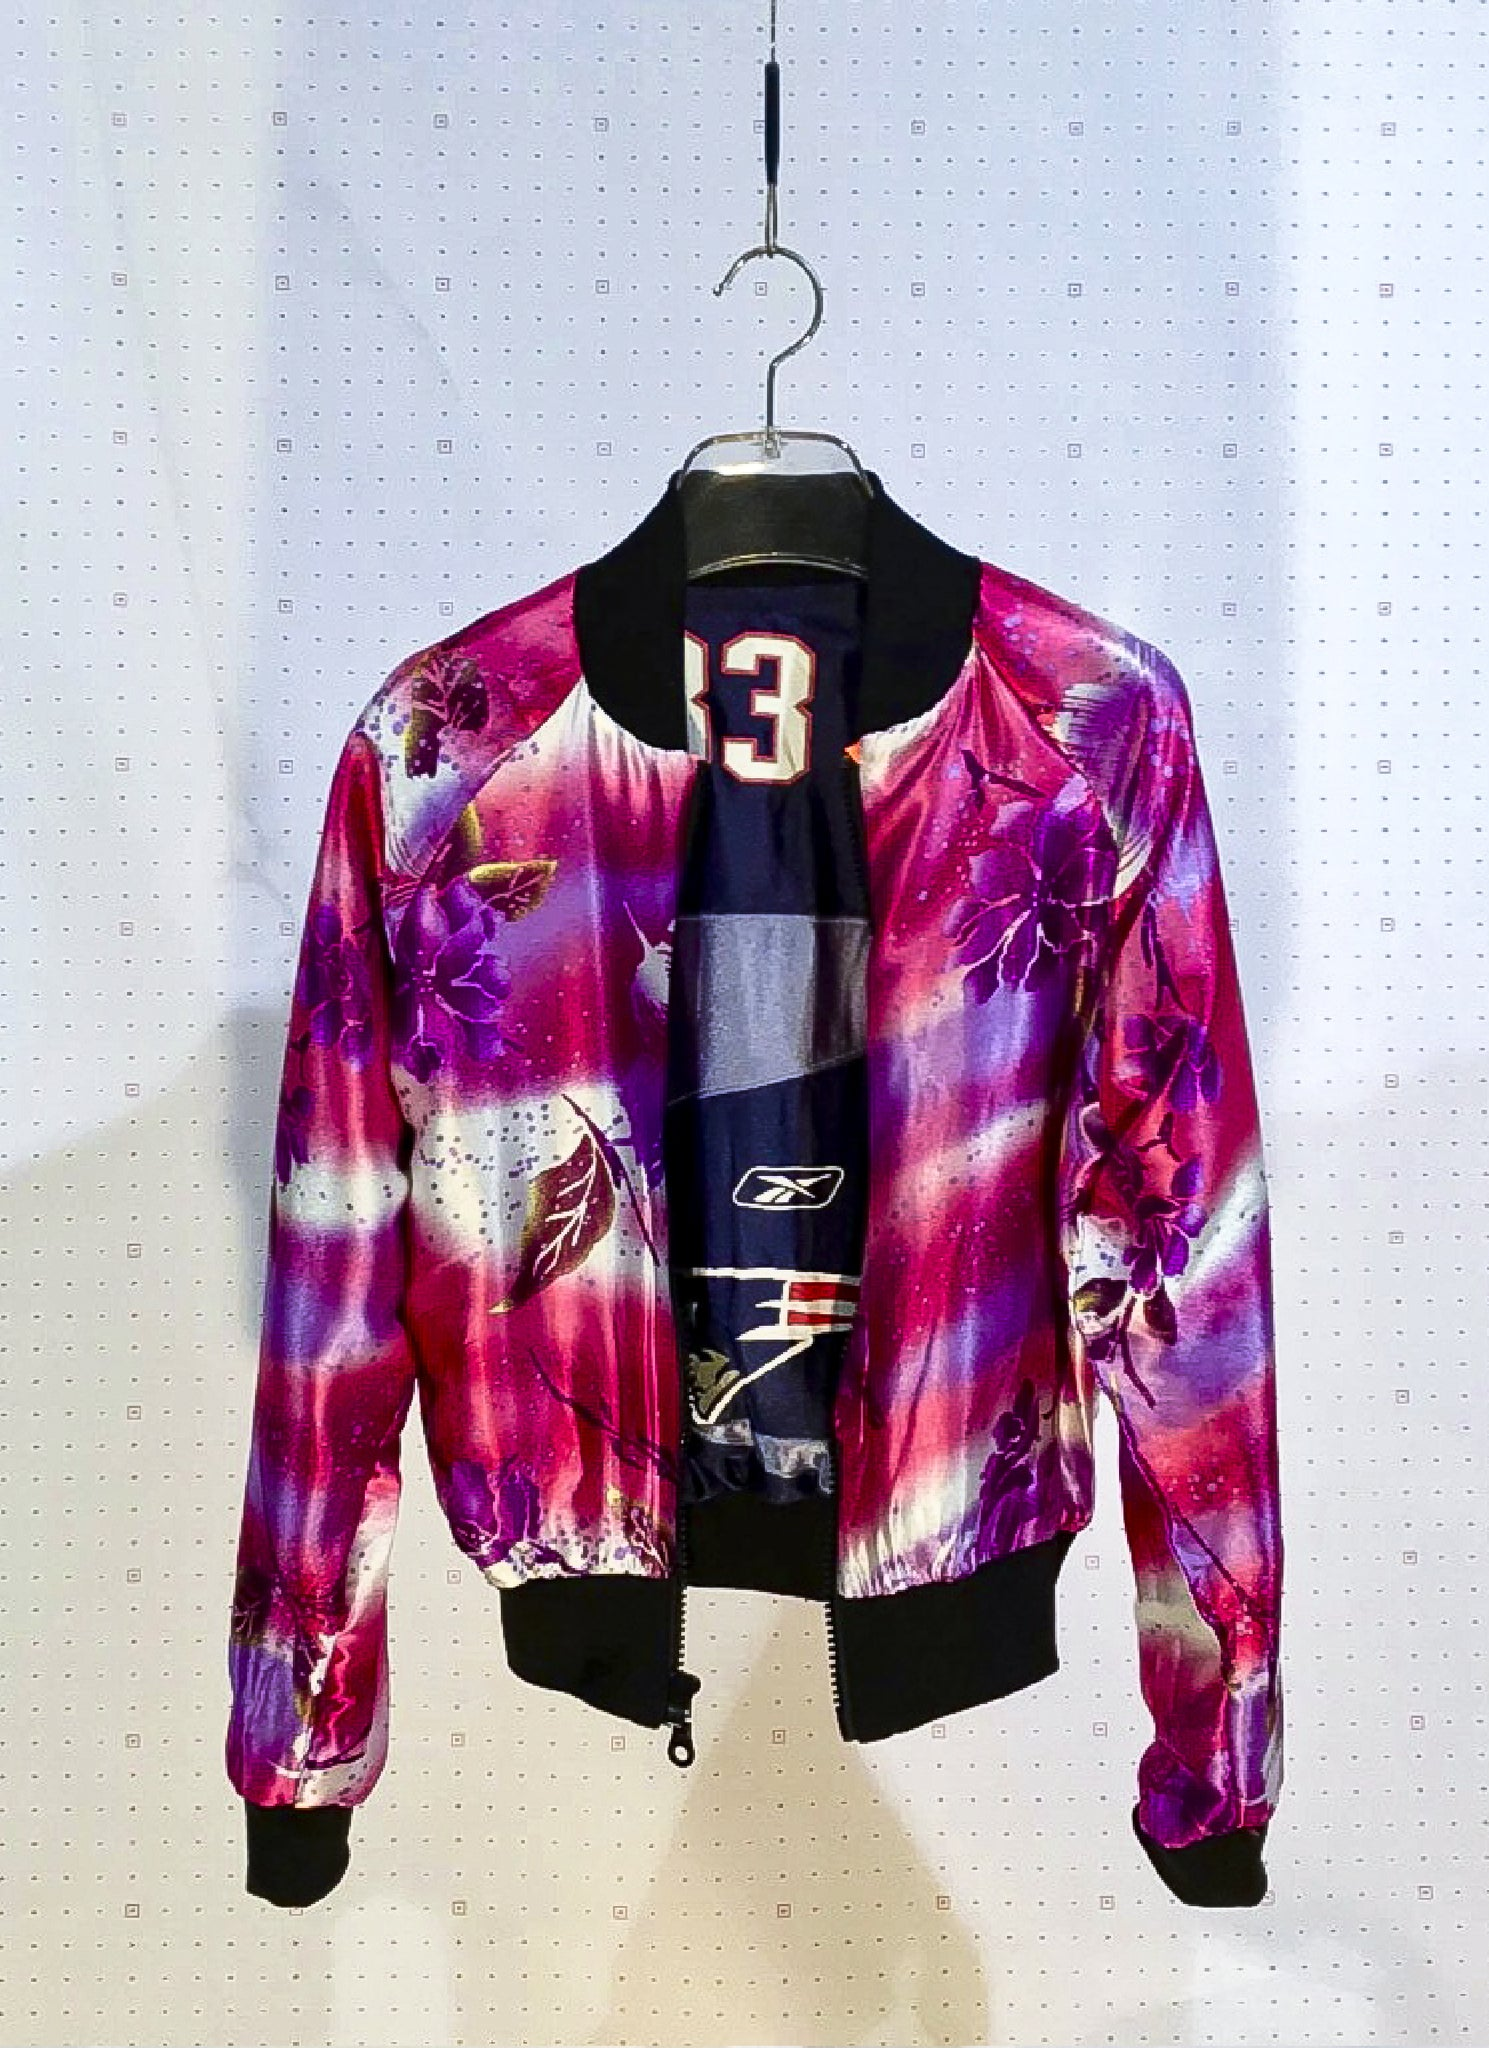 #83 - UNIQUE - Women 100% Recycled NFL Jersey